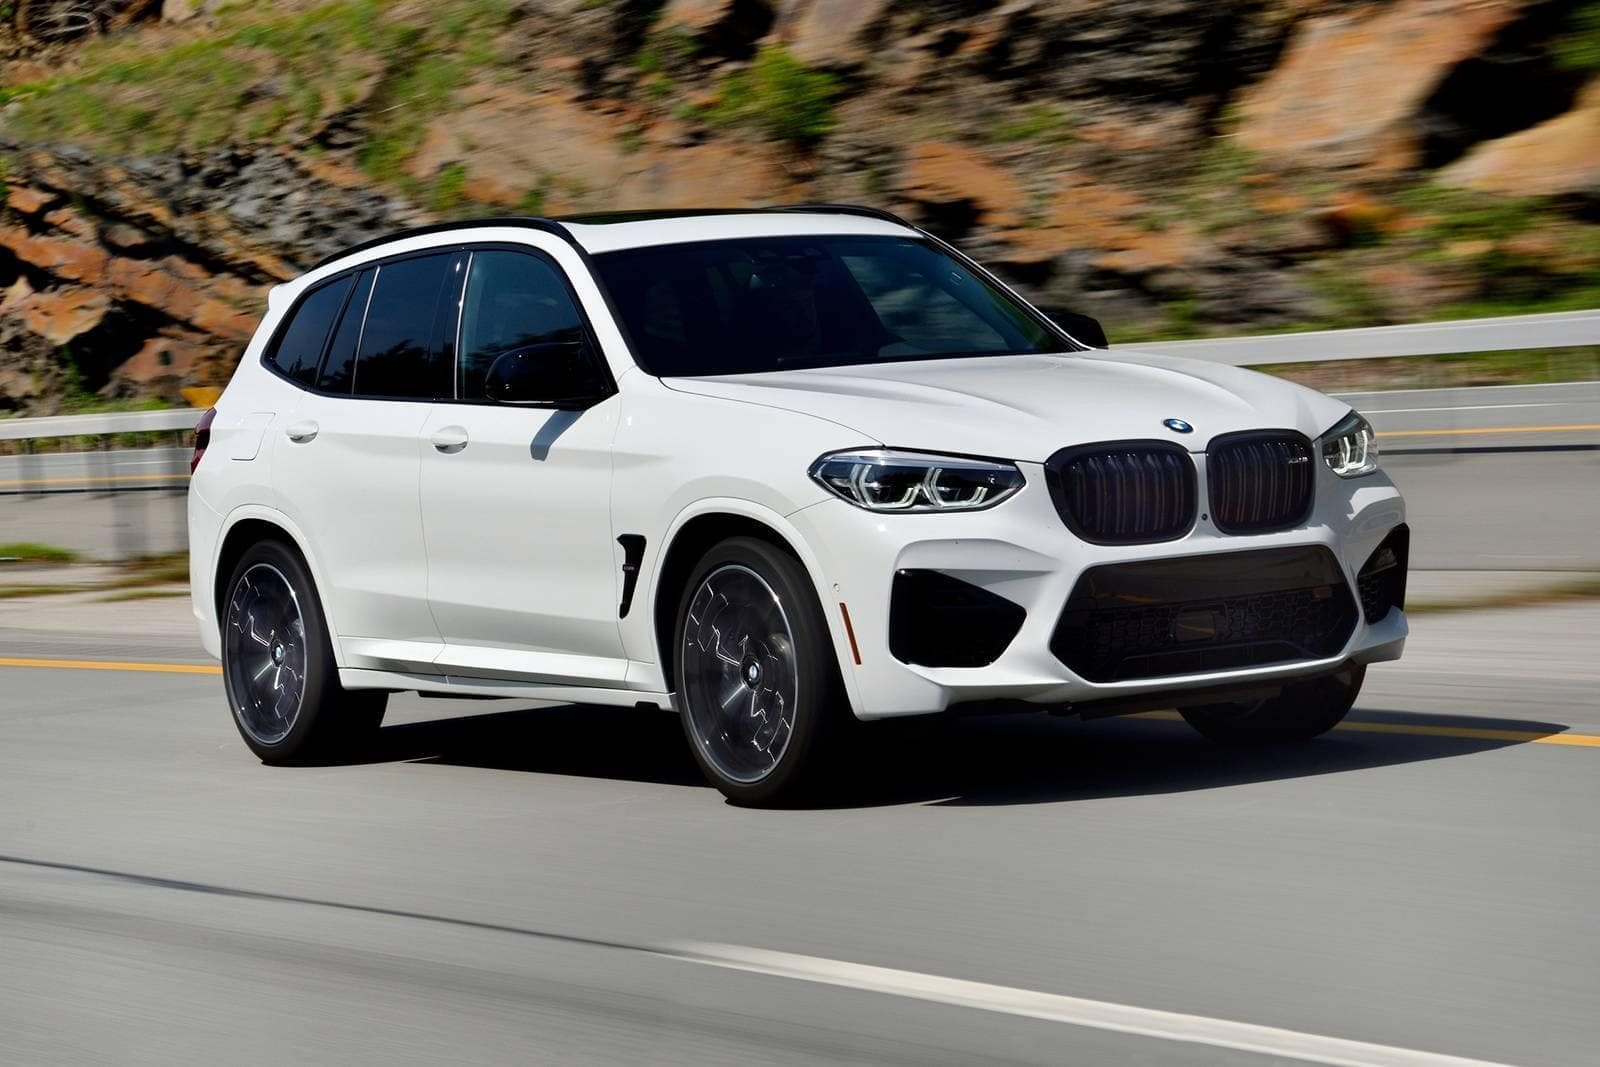 New BMW X3 M for Sale in Bend, OR